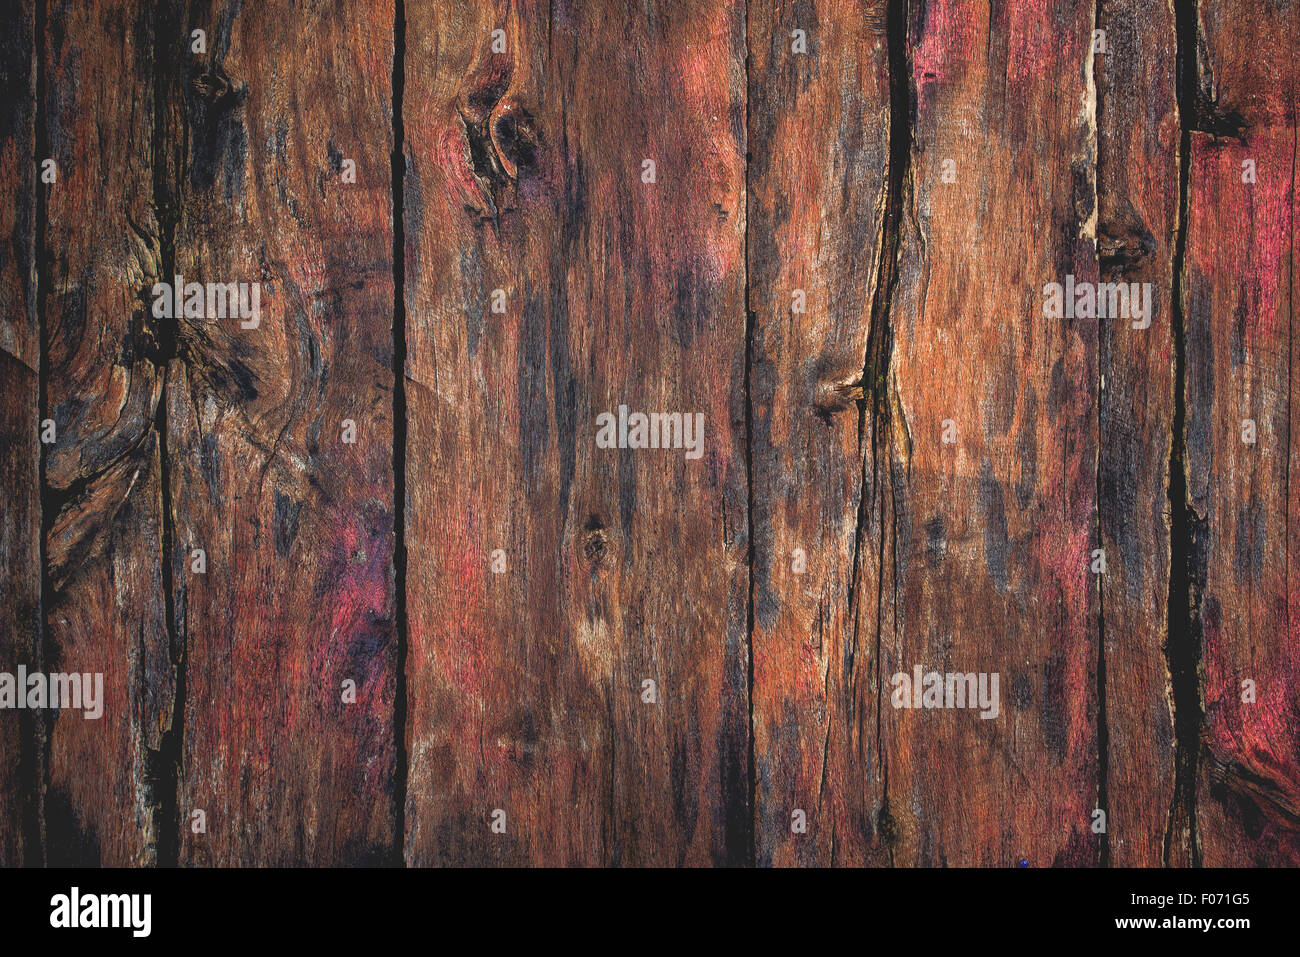 Rustic wood surface texture, old wooden planks as background - Stock Image